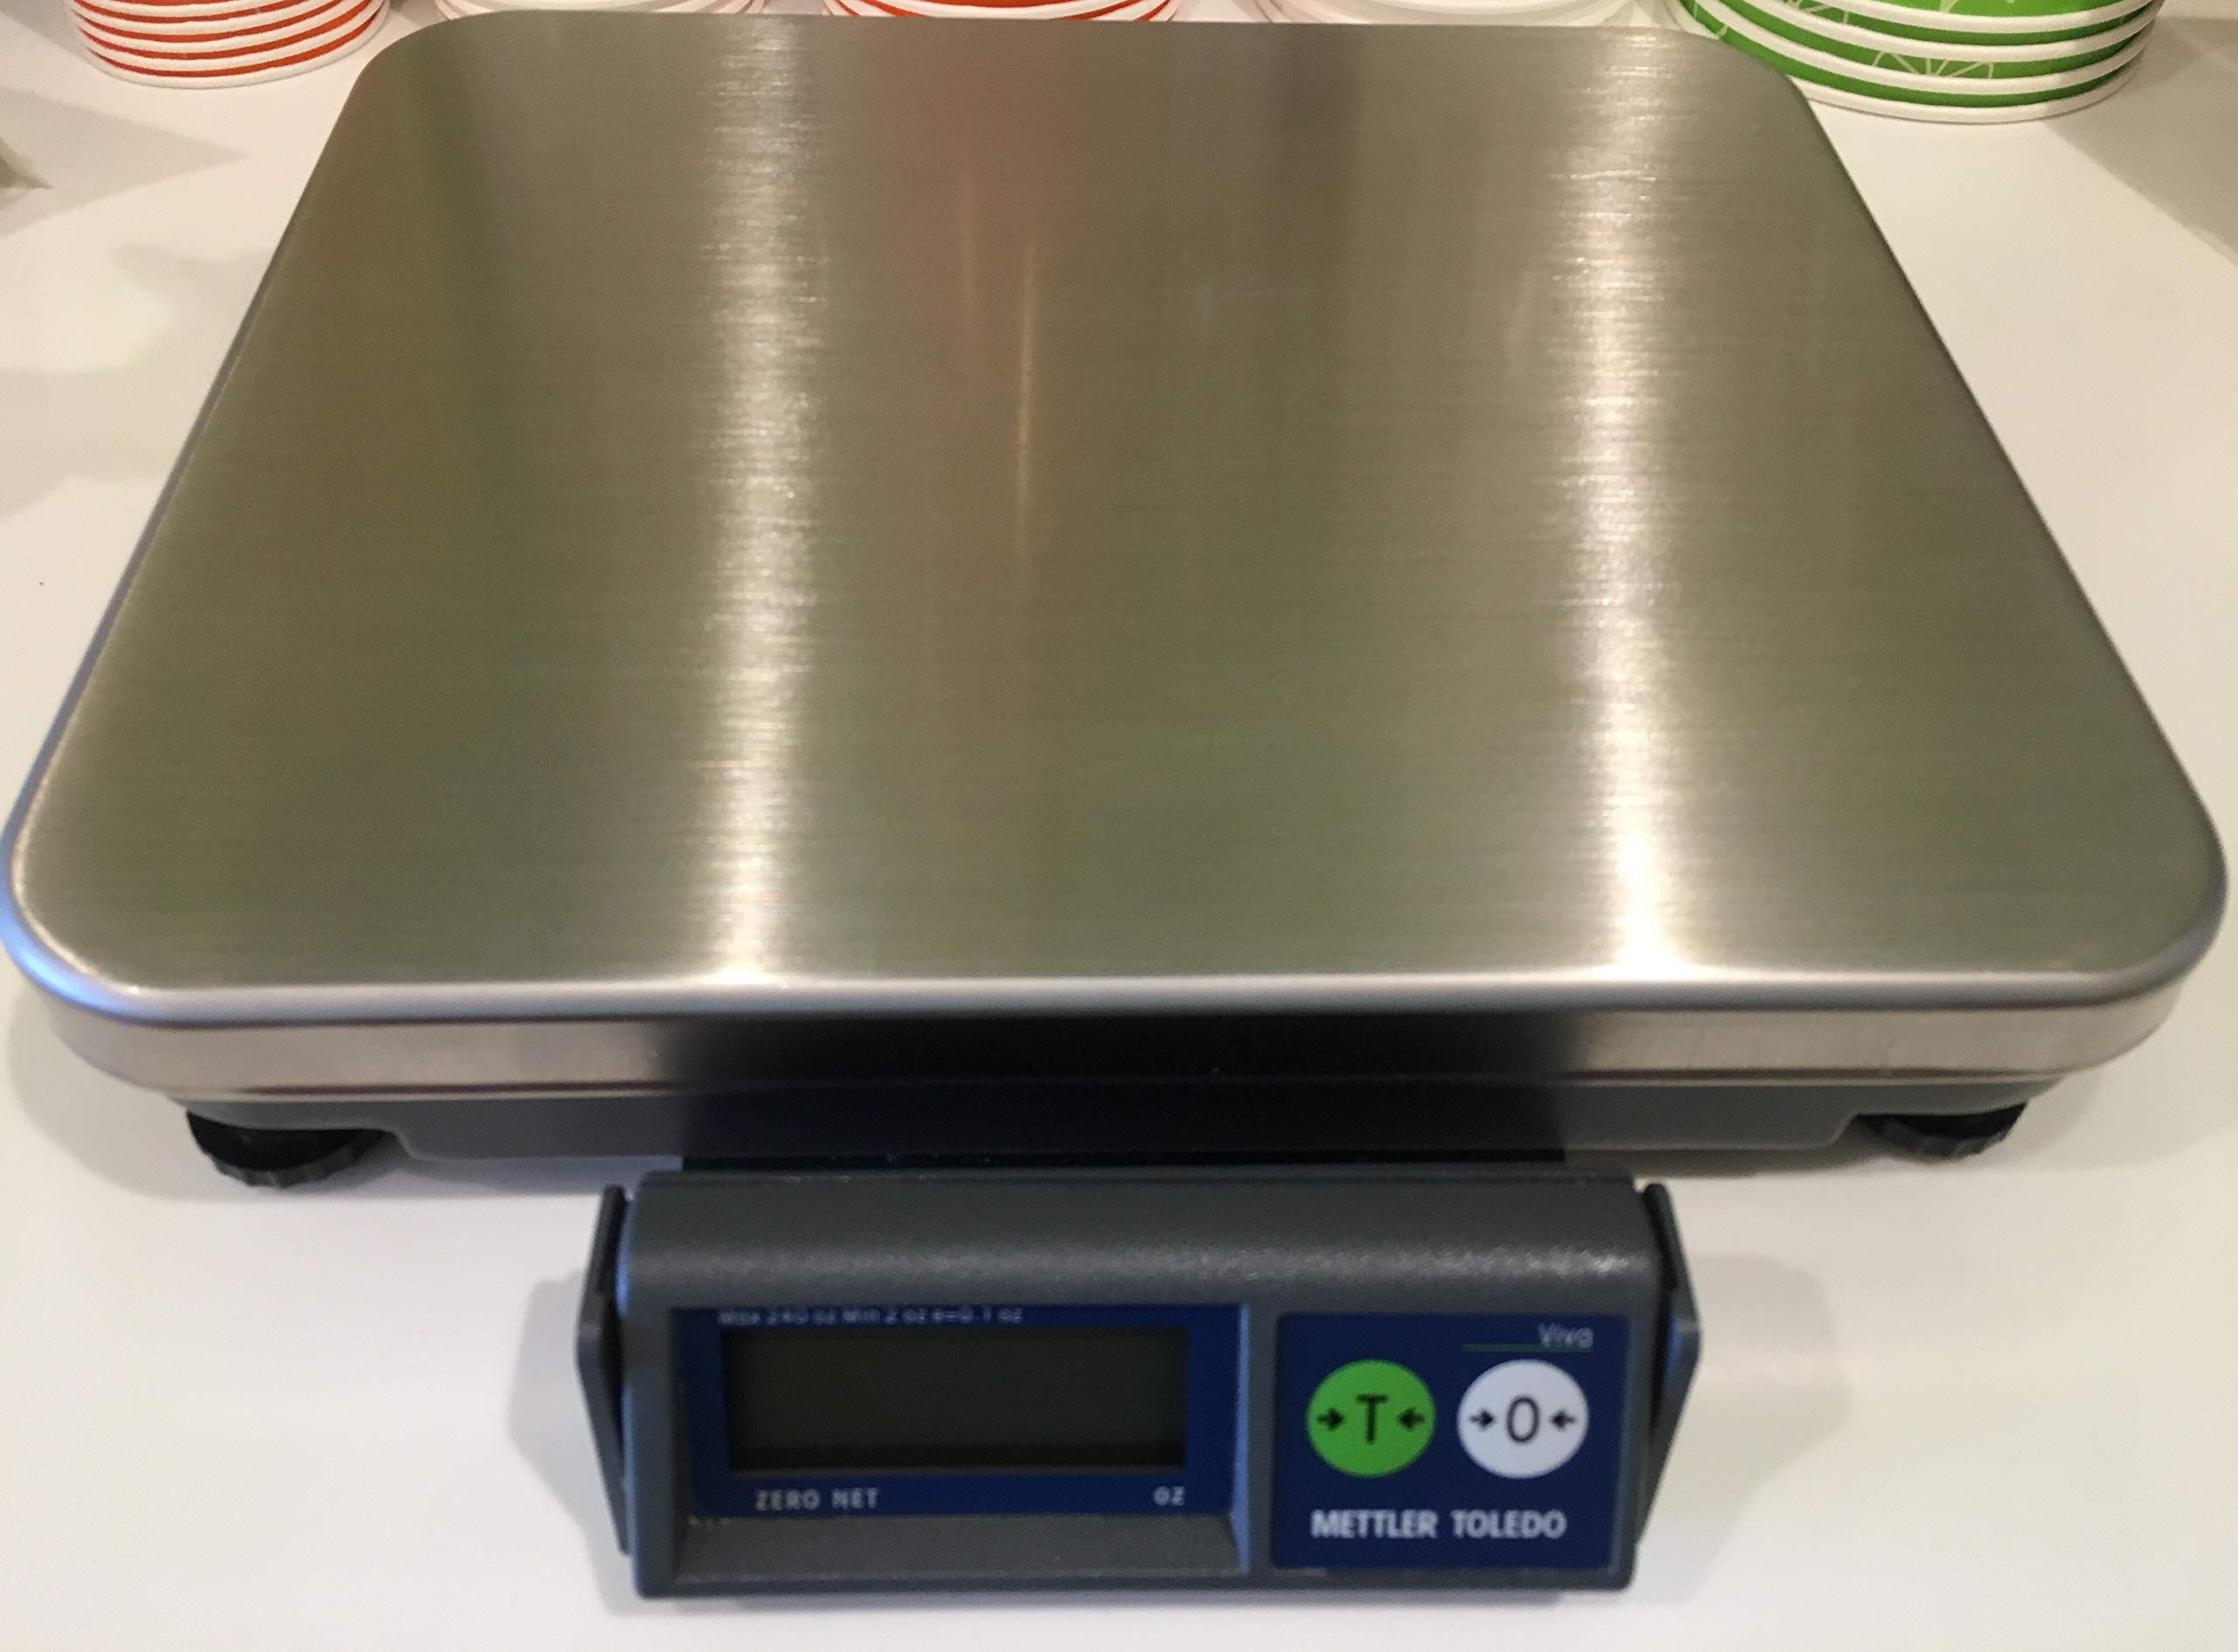 Mettler Toledo Bench Scale BC-60U BC series Shipping UPS Bench Scale,NTEP Legal For Trade,RS232, 150 lb x 0.05 lb,New Replacement from Mettler for PS60 by Mettler Toledo